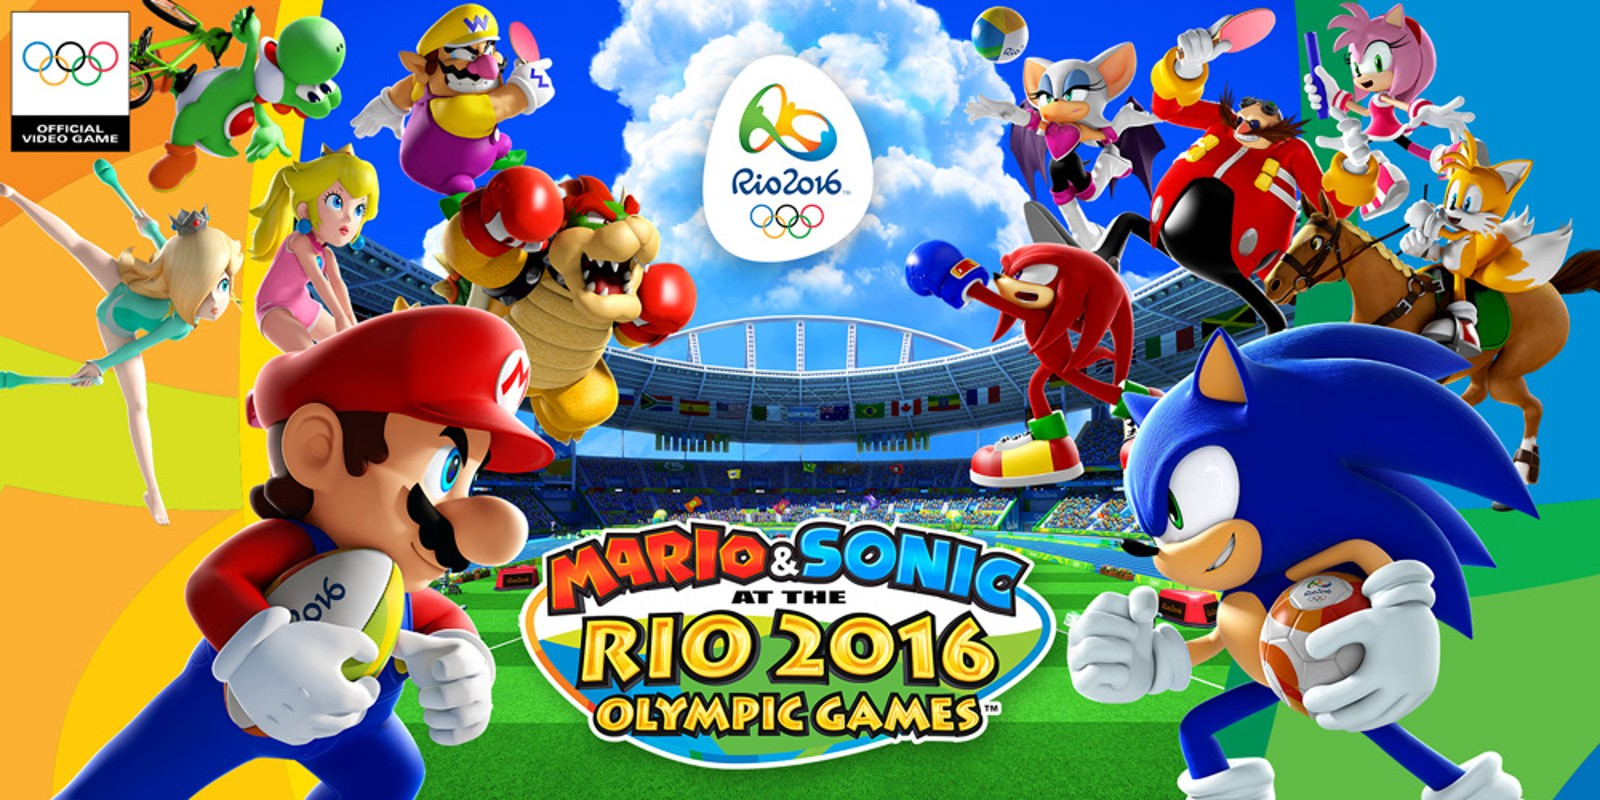 Mario sonic at the rio 2016 olympic games